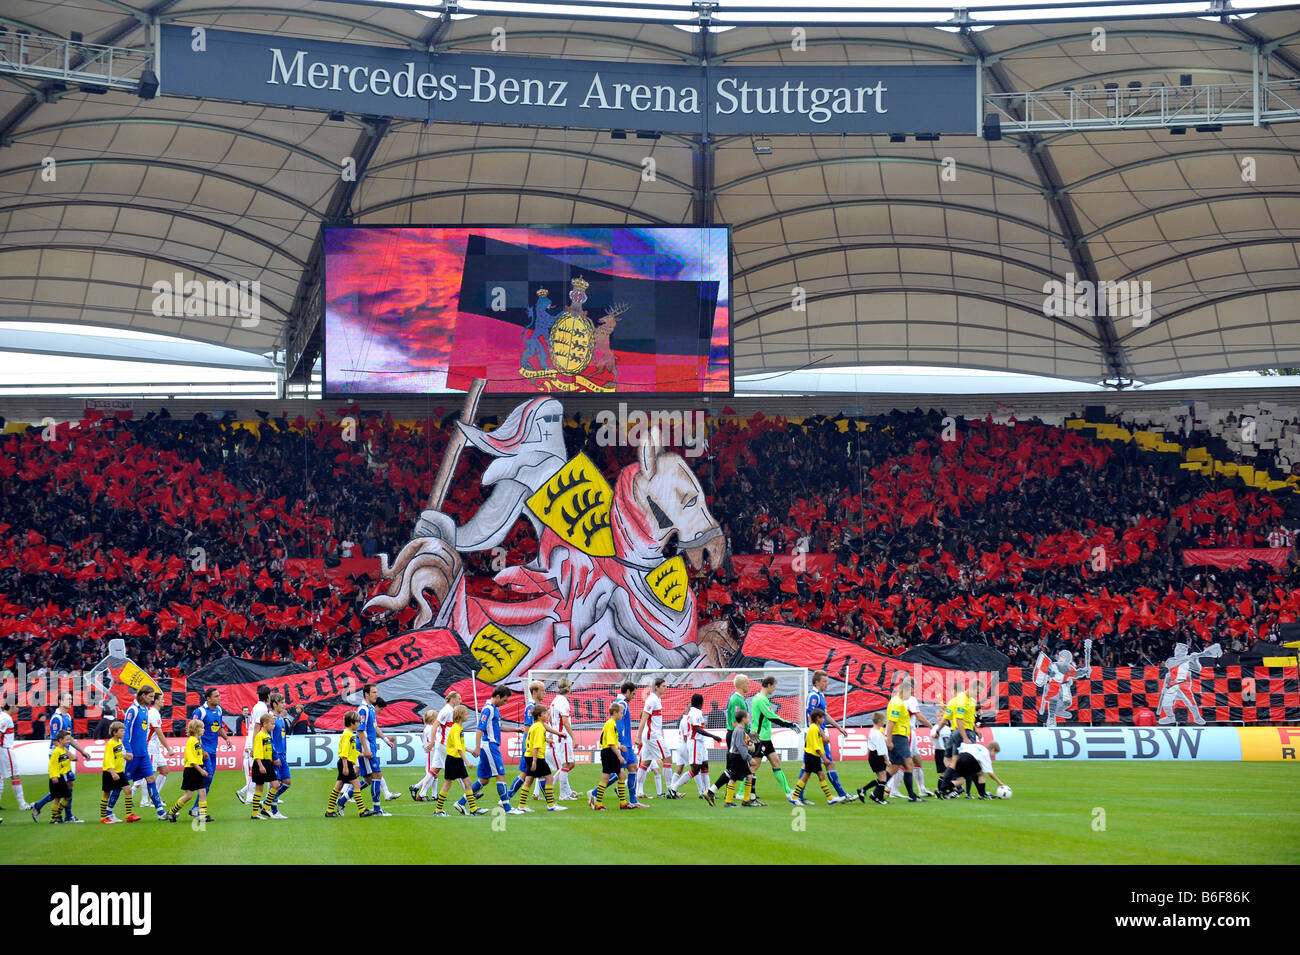 Action fan club fan curve VfB Stuttgart football club, knight on horseback with the incoming teams, Mercedes-Benz - Stock Image